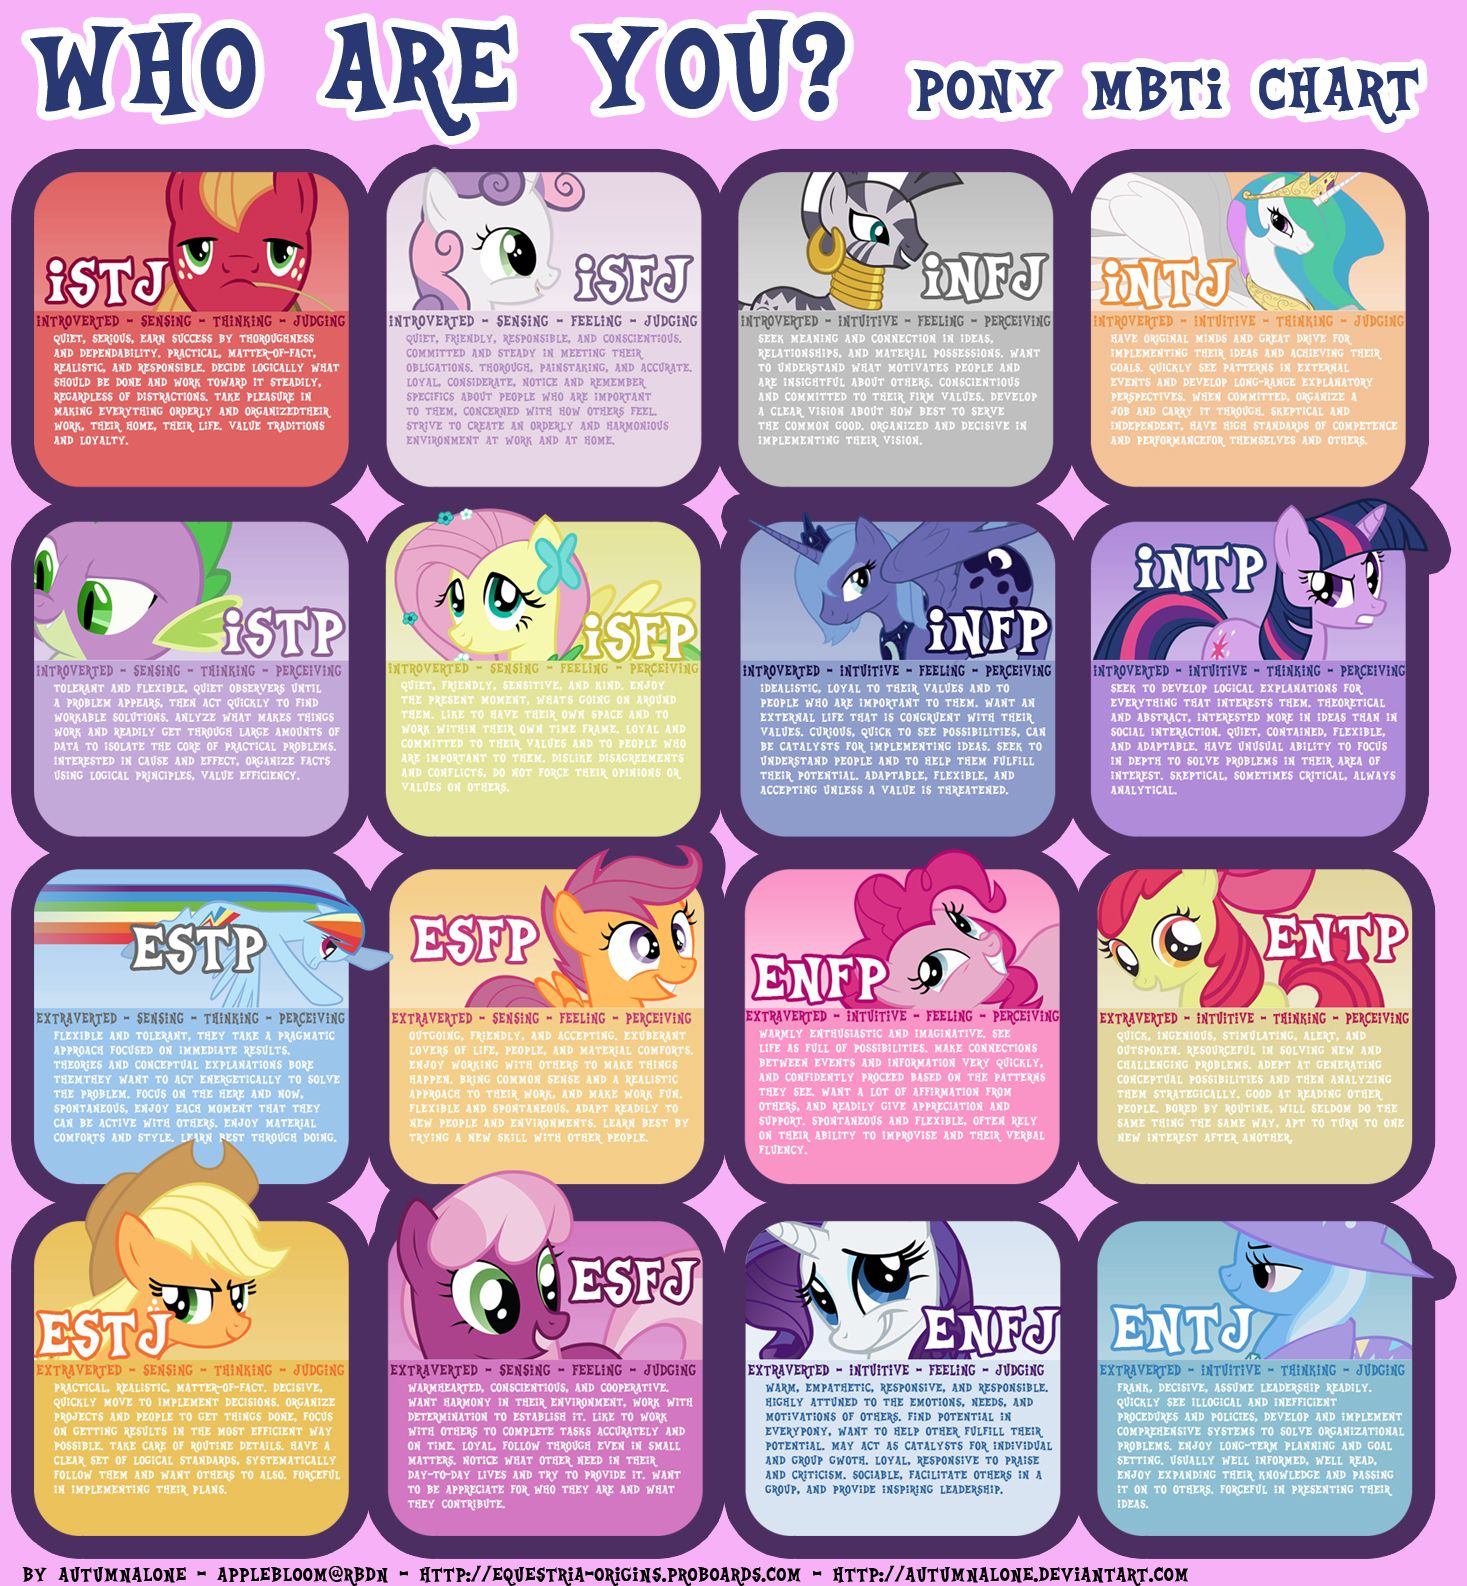 Ponies and Myers-Briggs